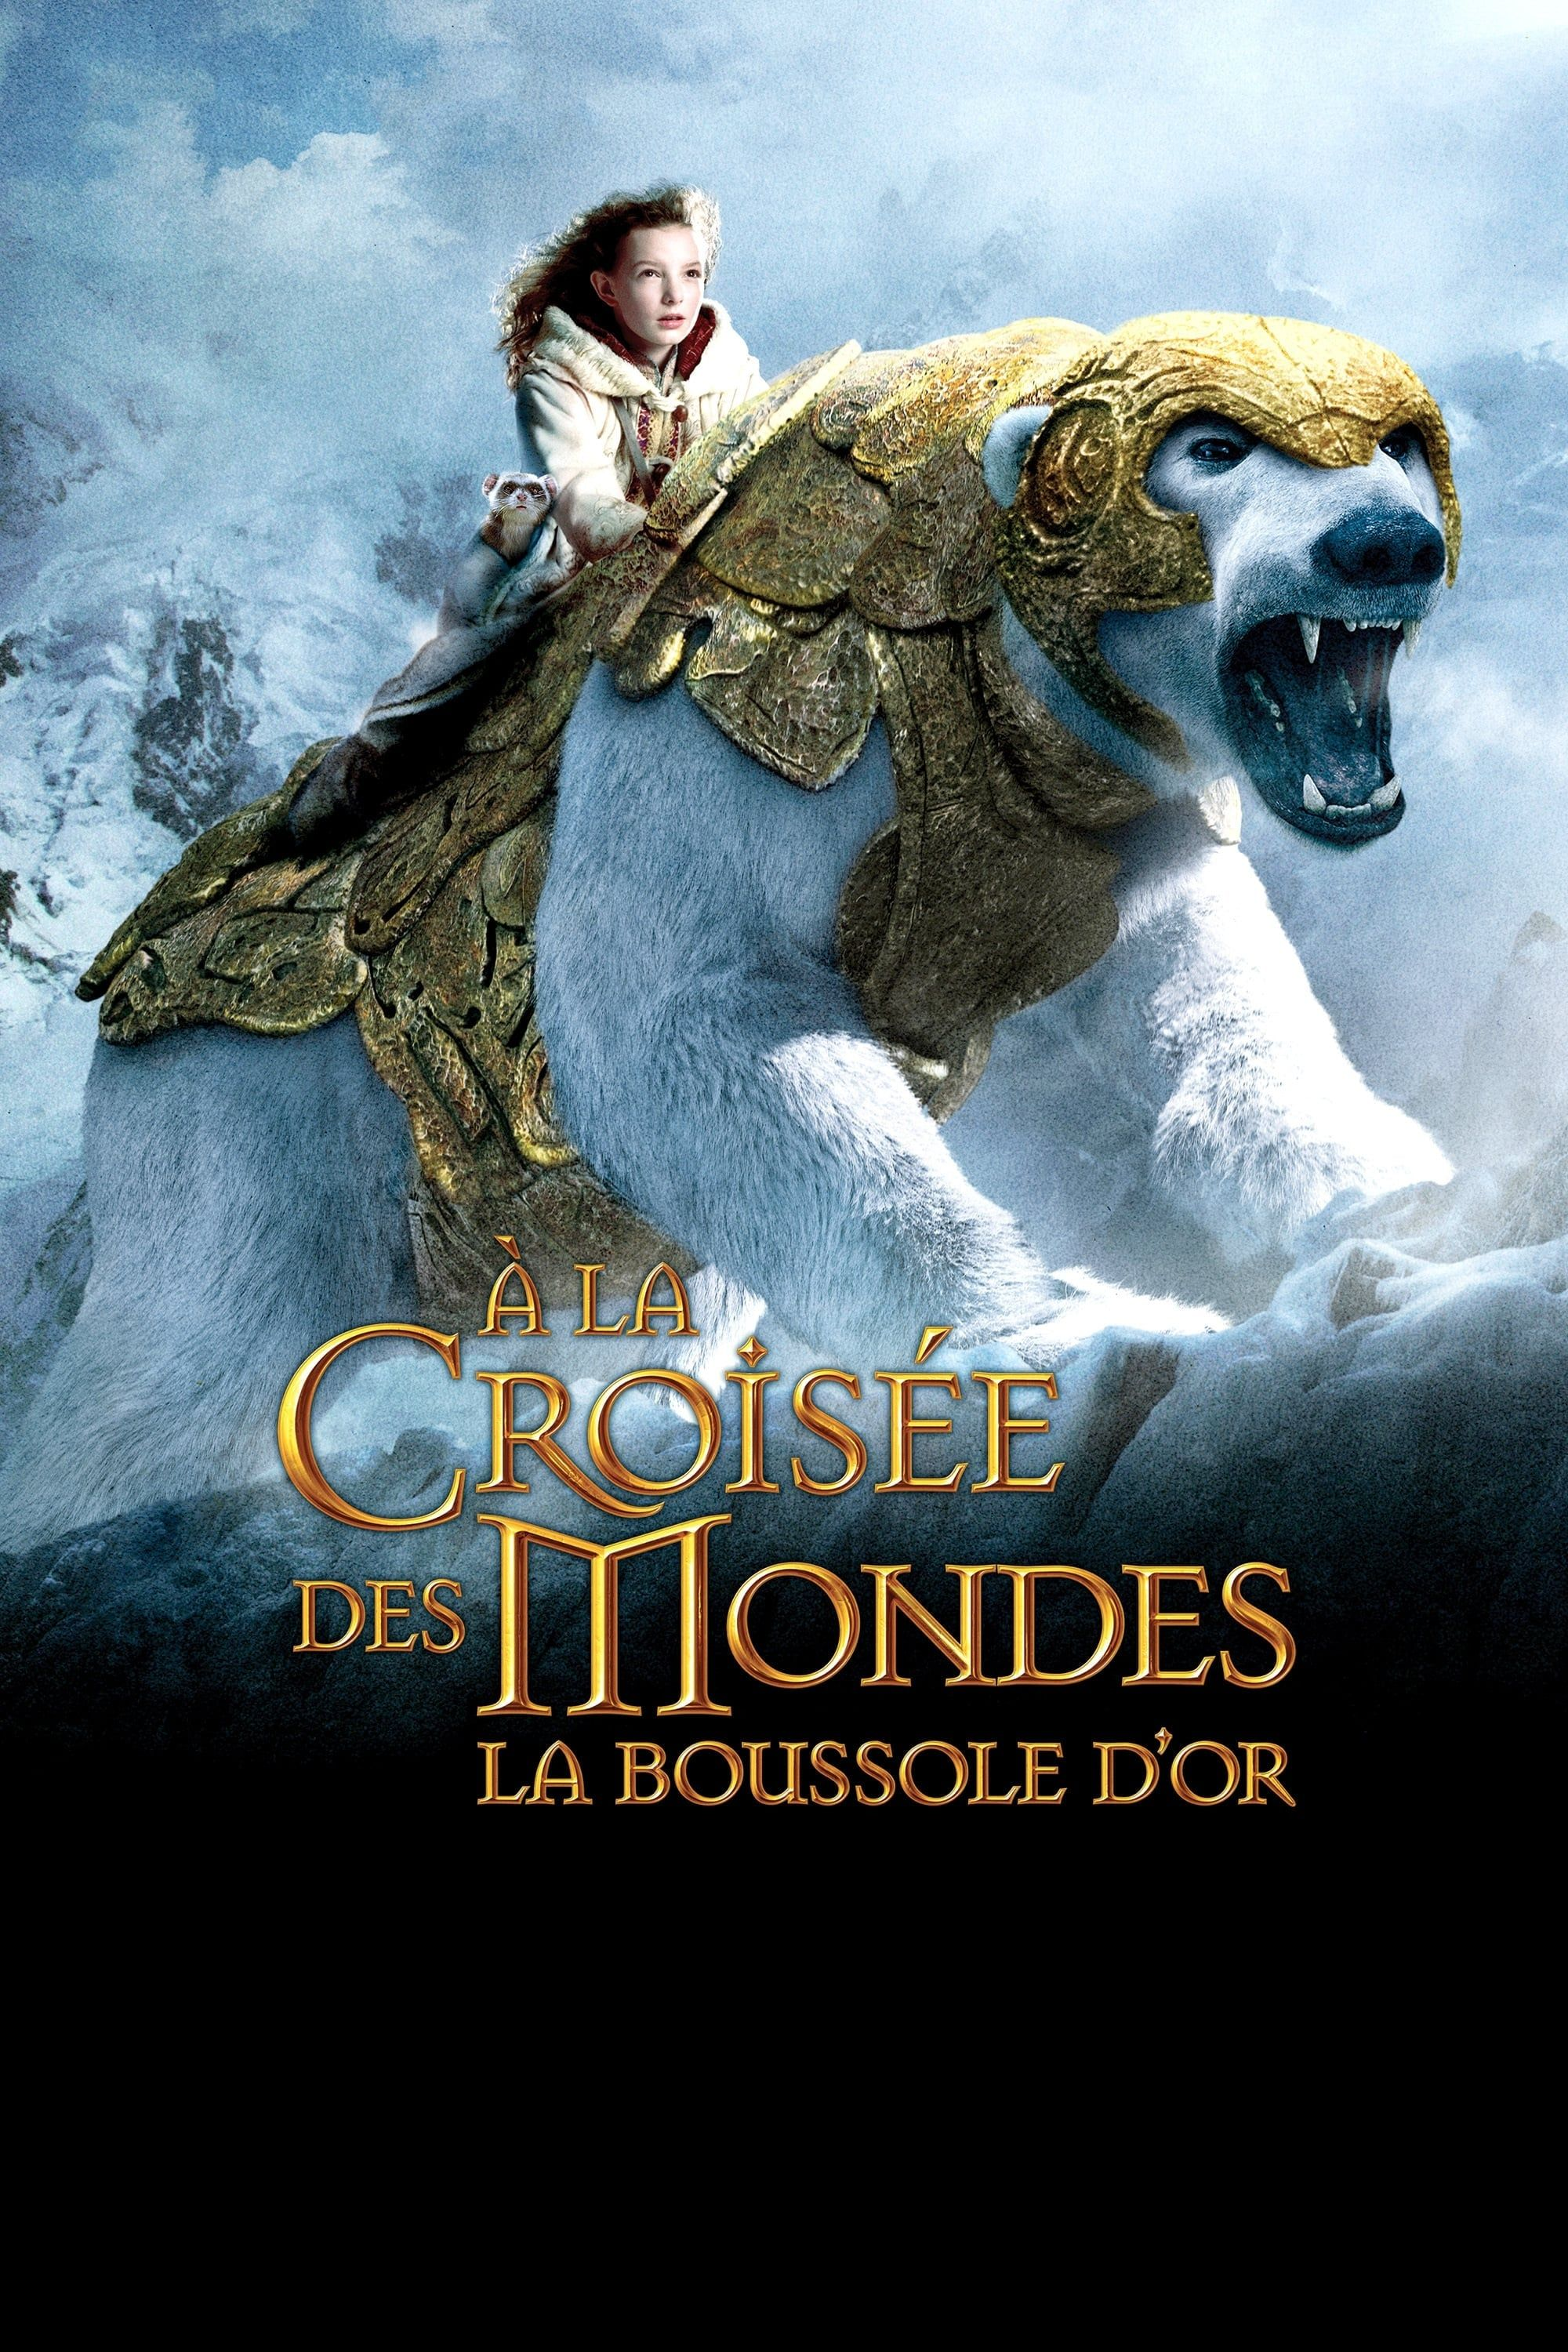 À la croisée des mondes - La Boussole d'or (2007) 1080p BluRay HDLight MULTi VFF x265 10-bit AC3 [GWEN] (The Golden Compass)